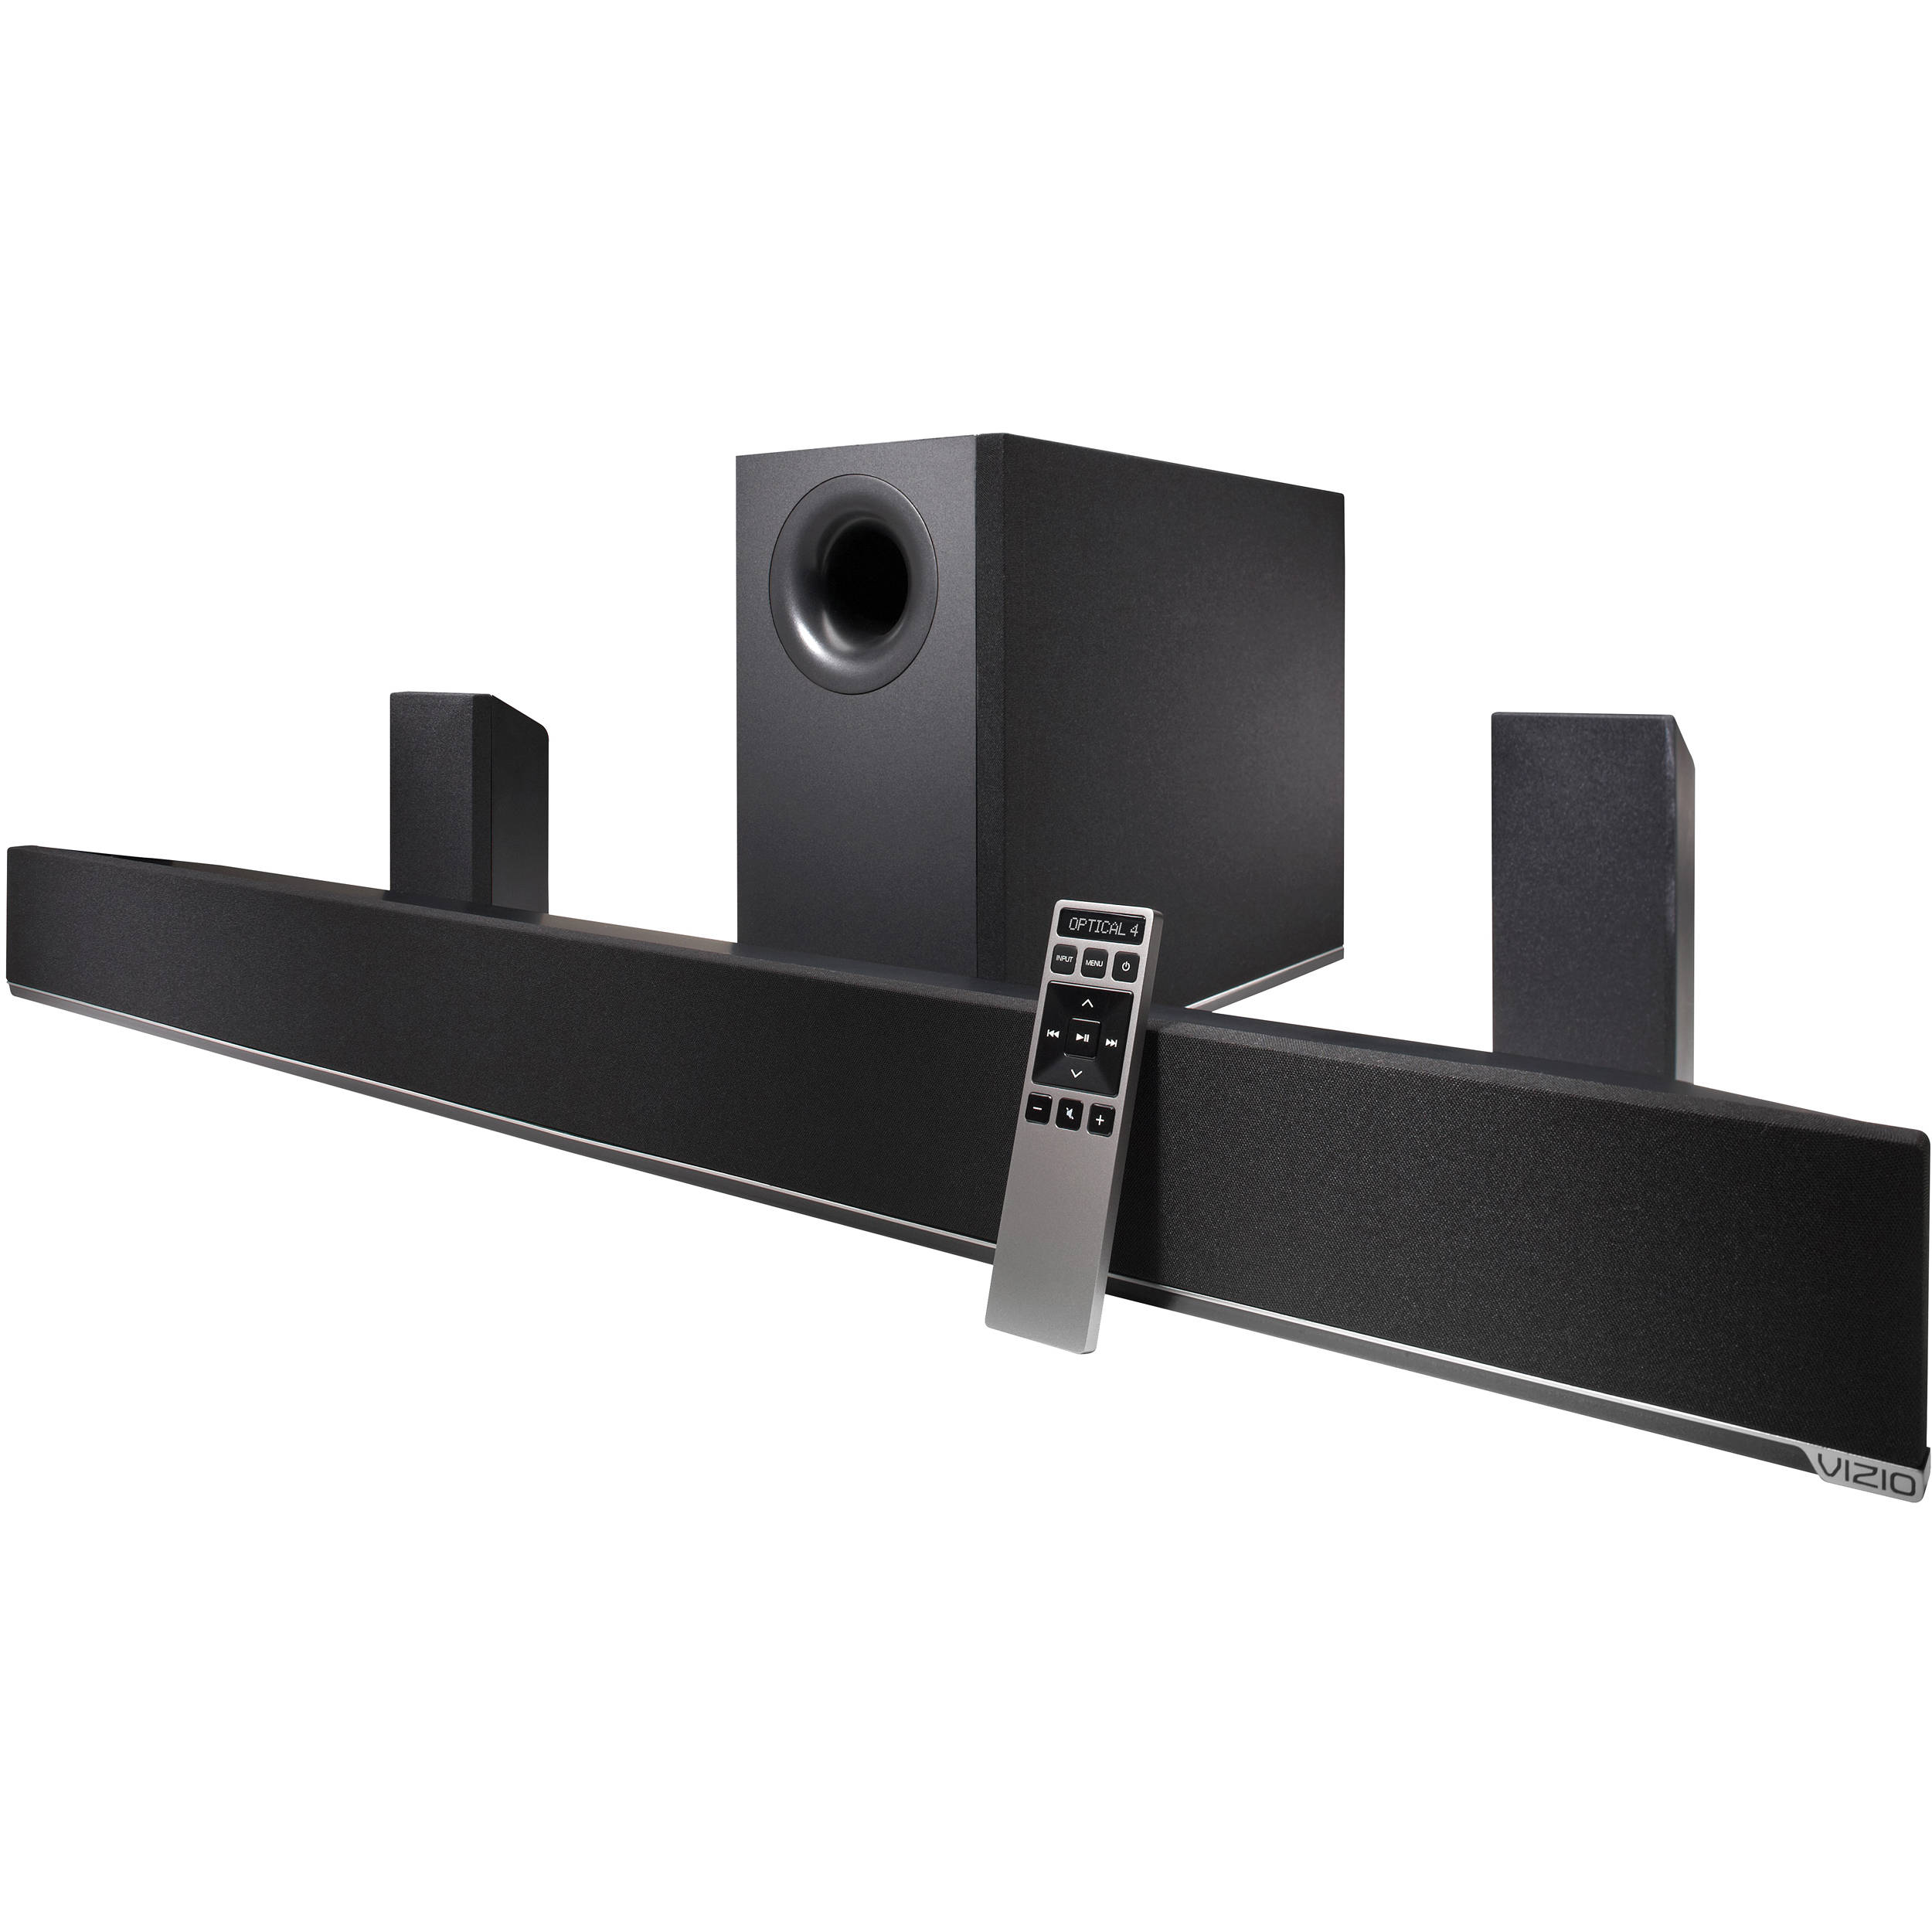 Vizio 42 5.1 Channel Soundbar